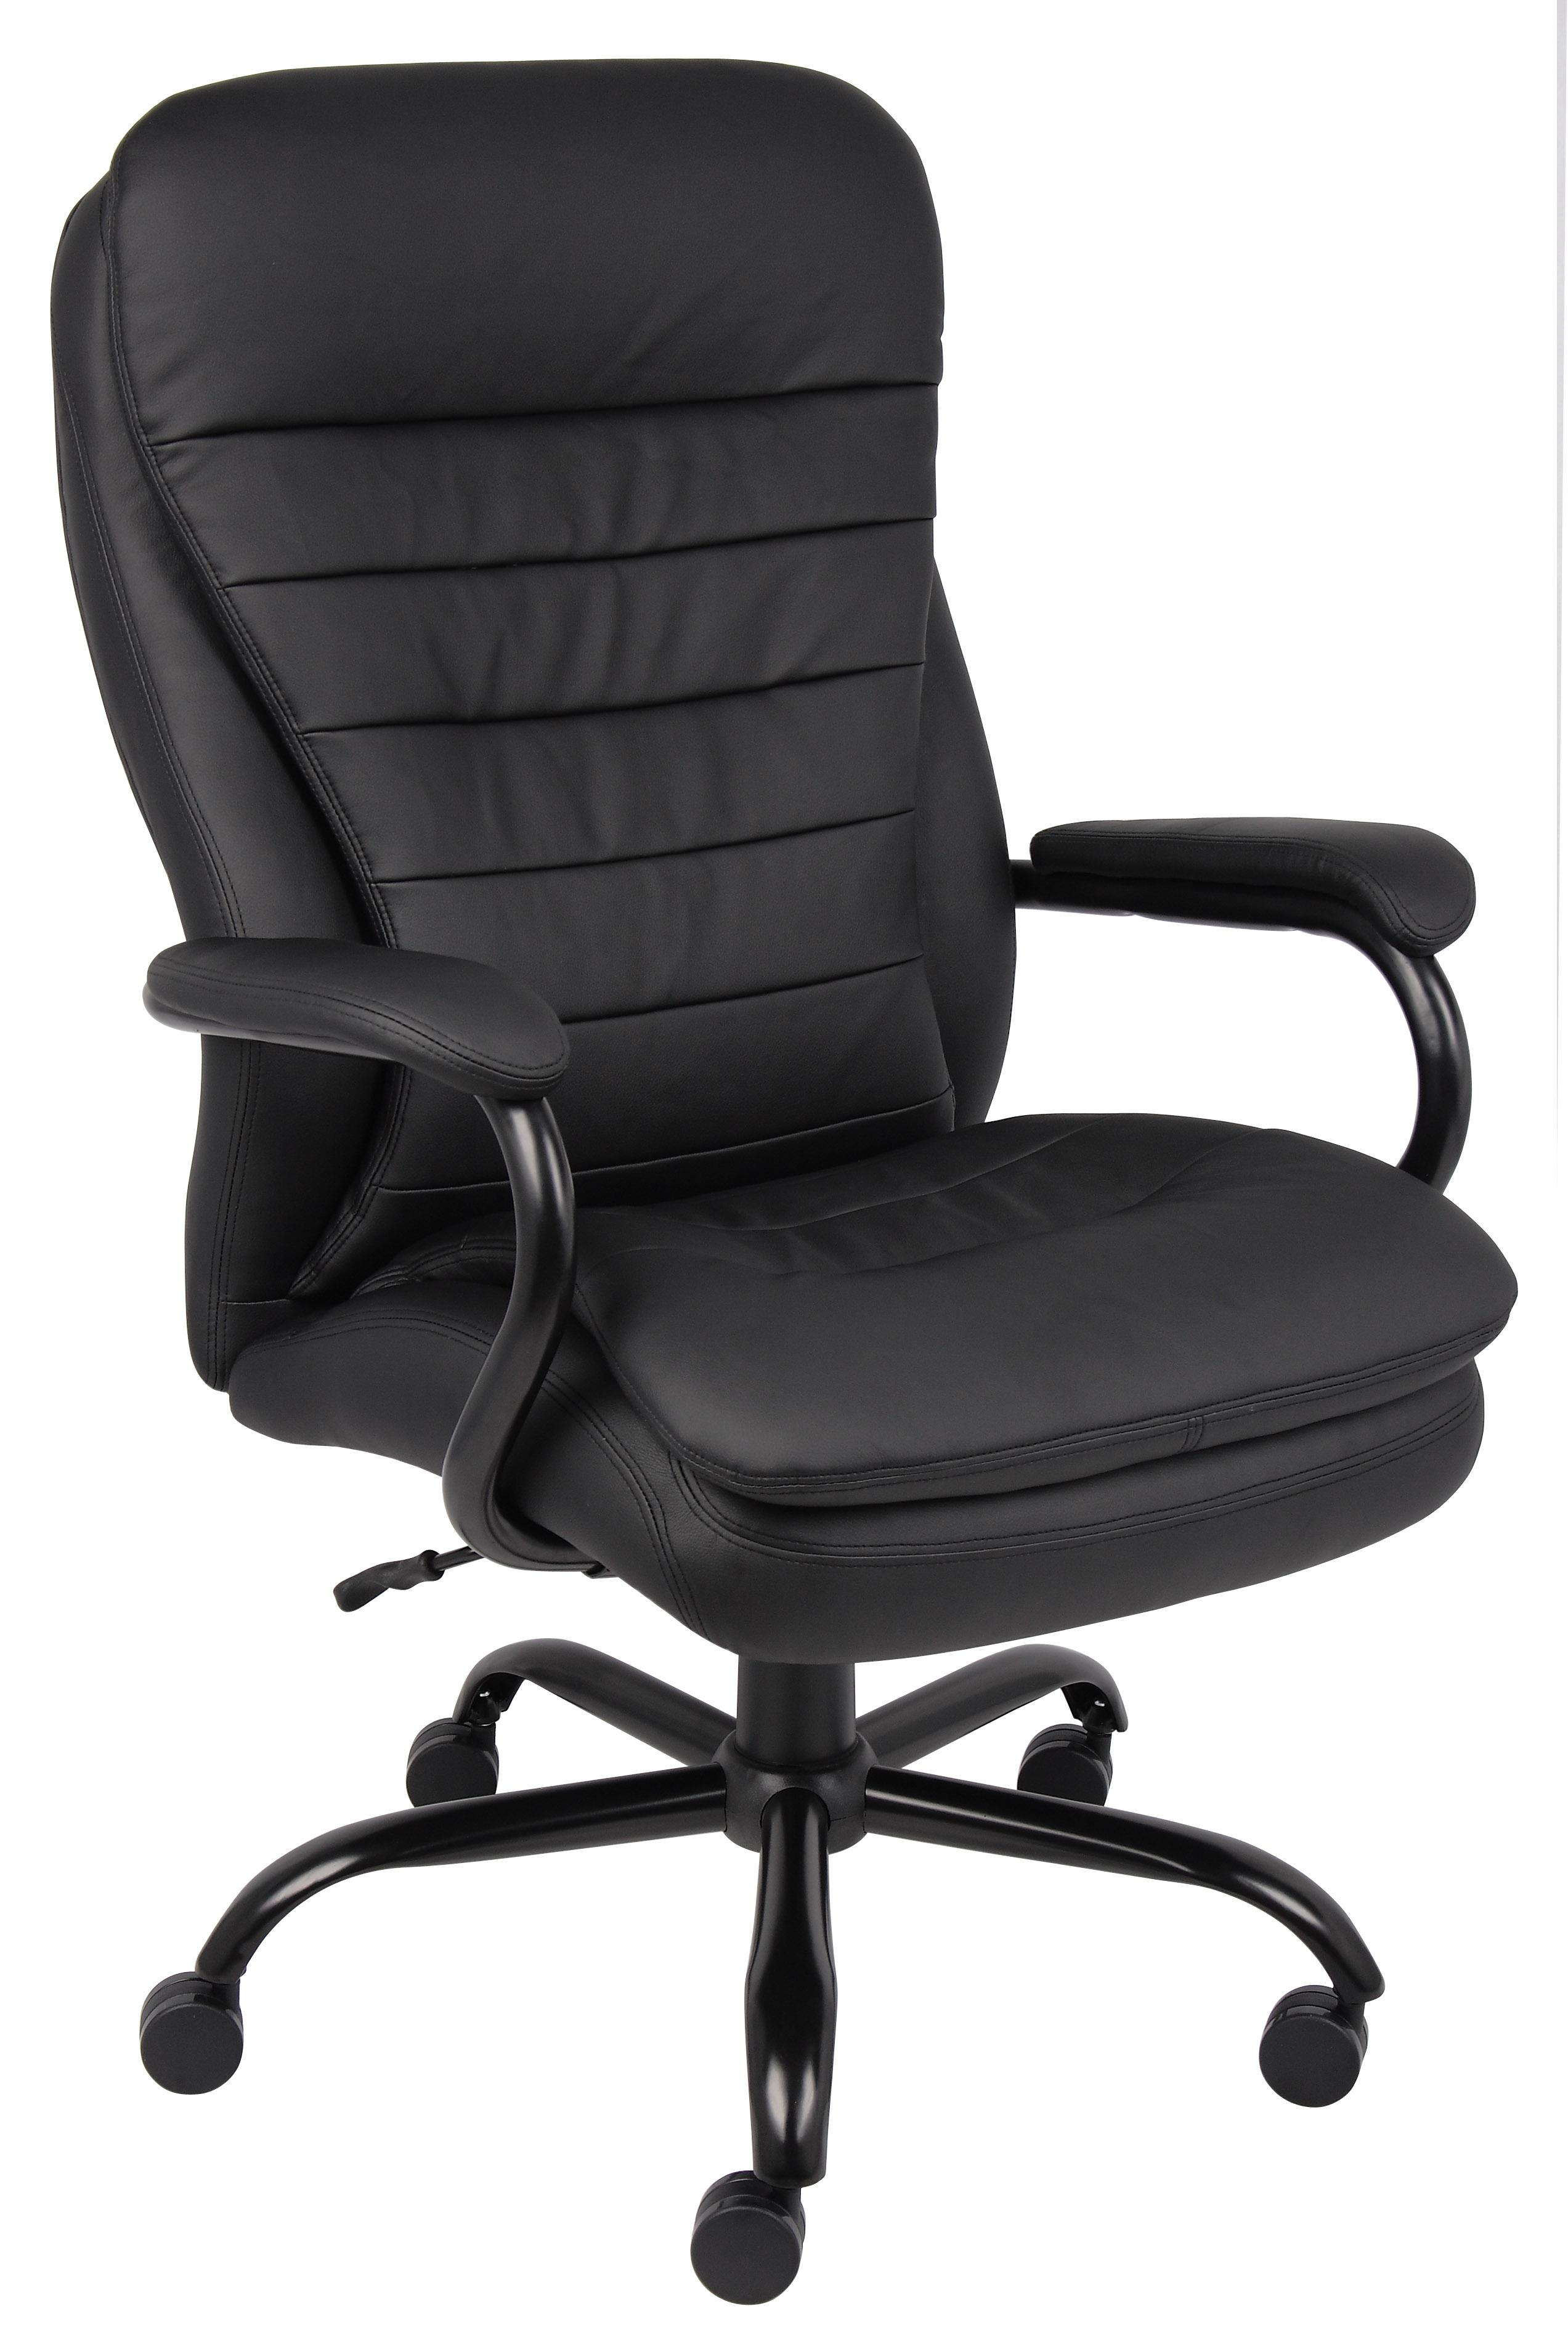 Presidential Seating Executive Chairs Heavy Duty Black Executive Chair - Item Number: O-991-CP